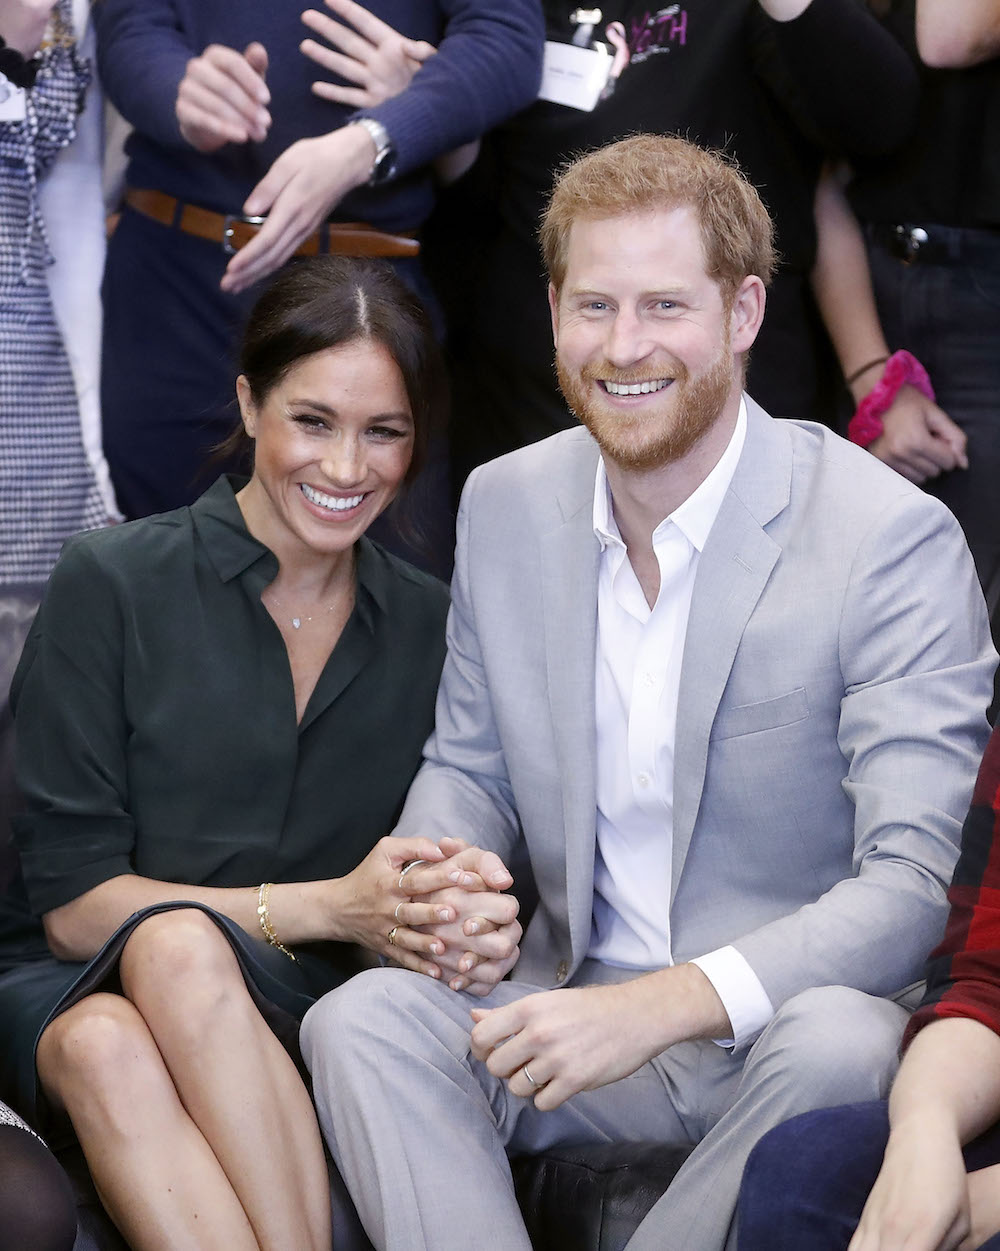 Meghan Markle & Other Stories Shirt in Sussex